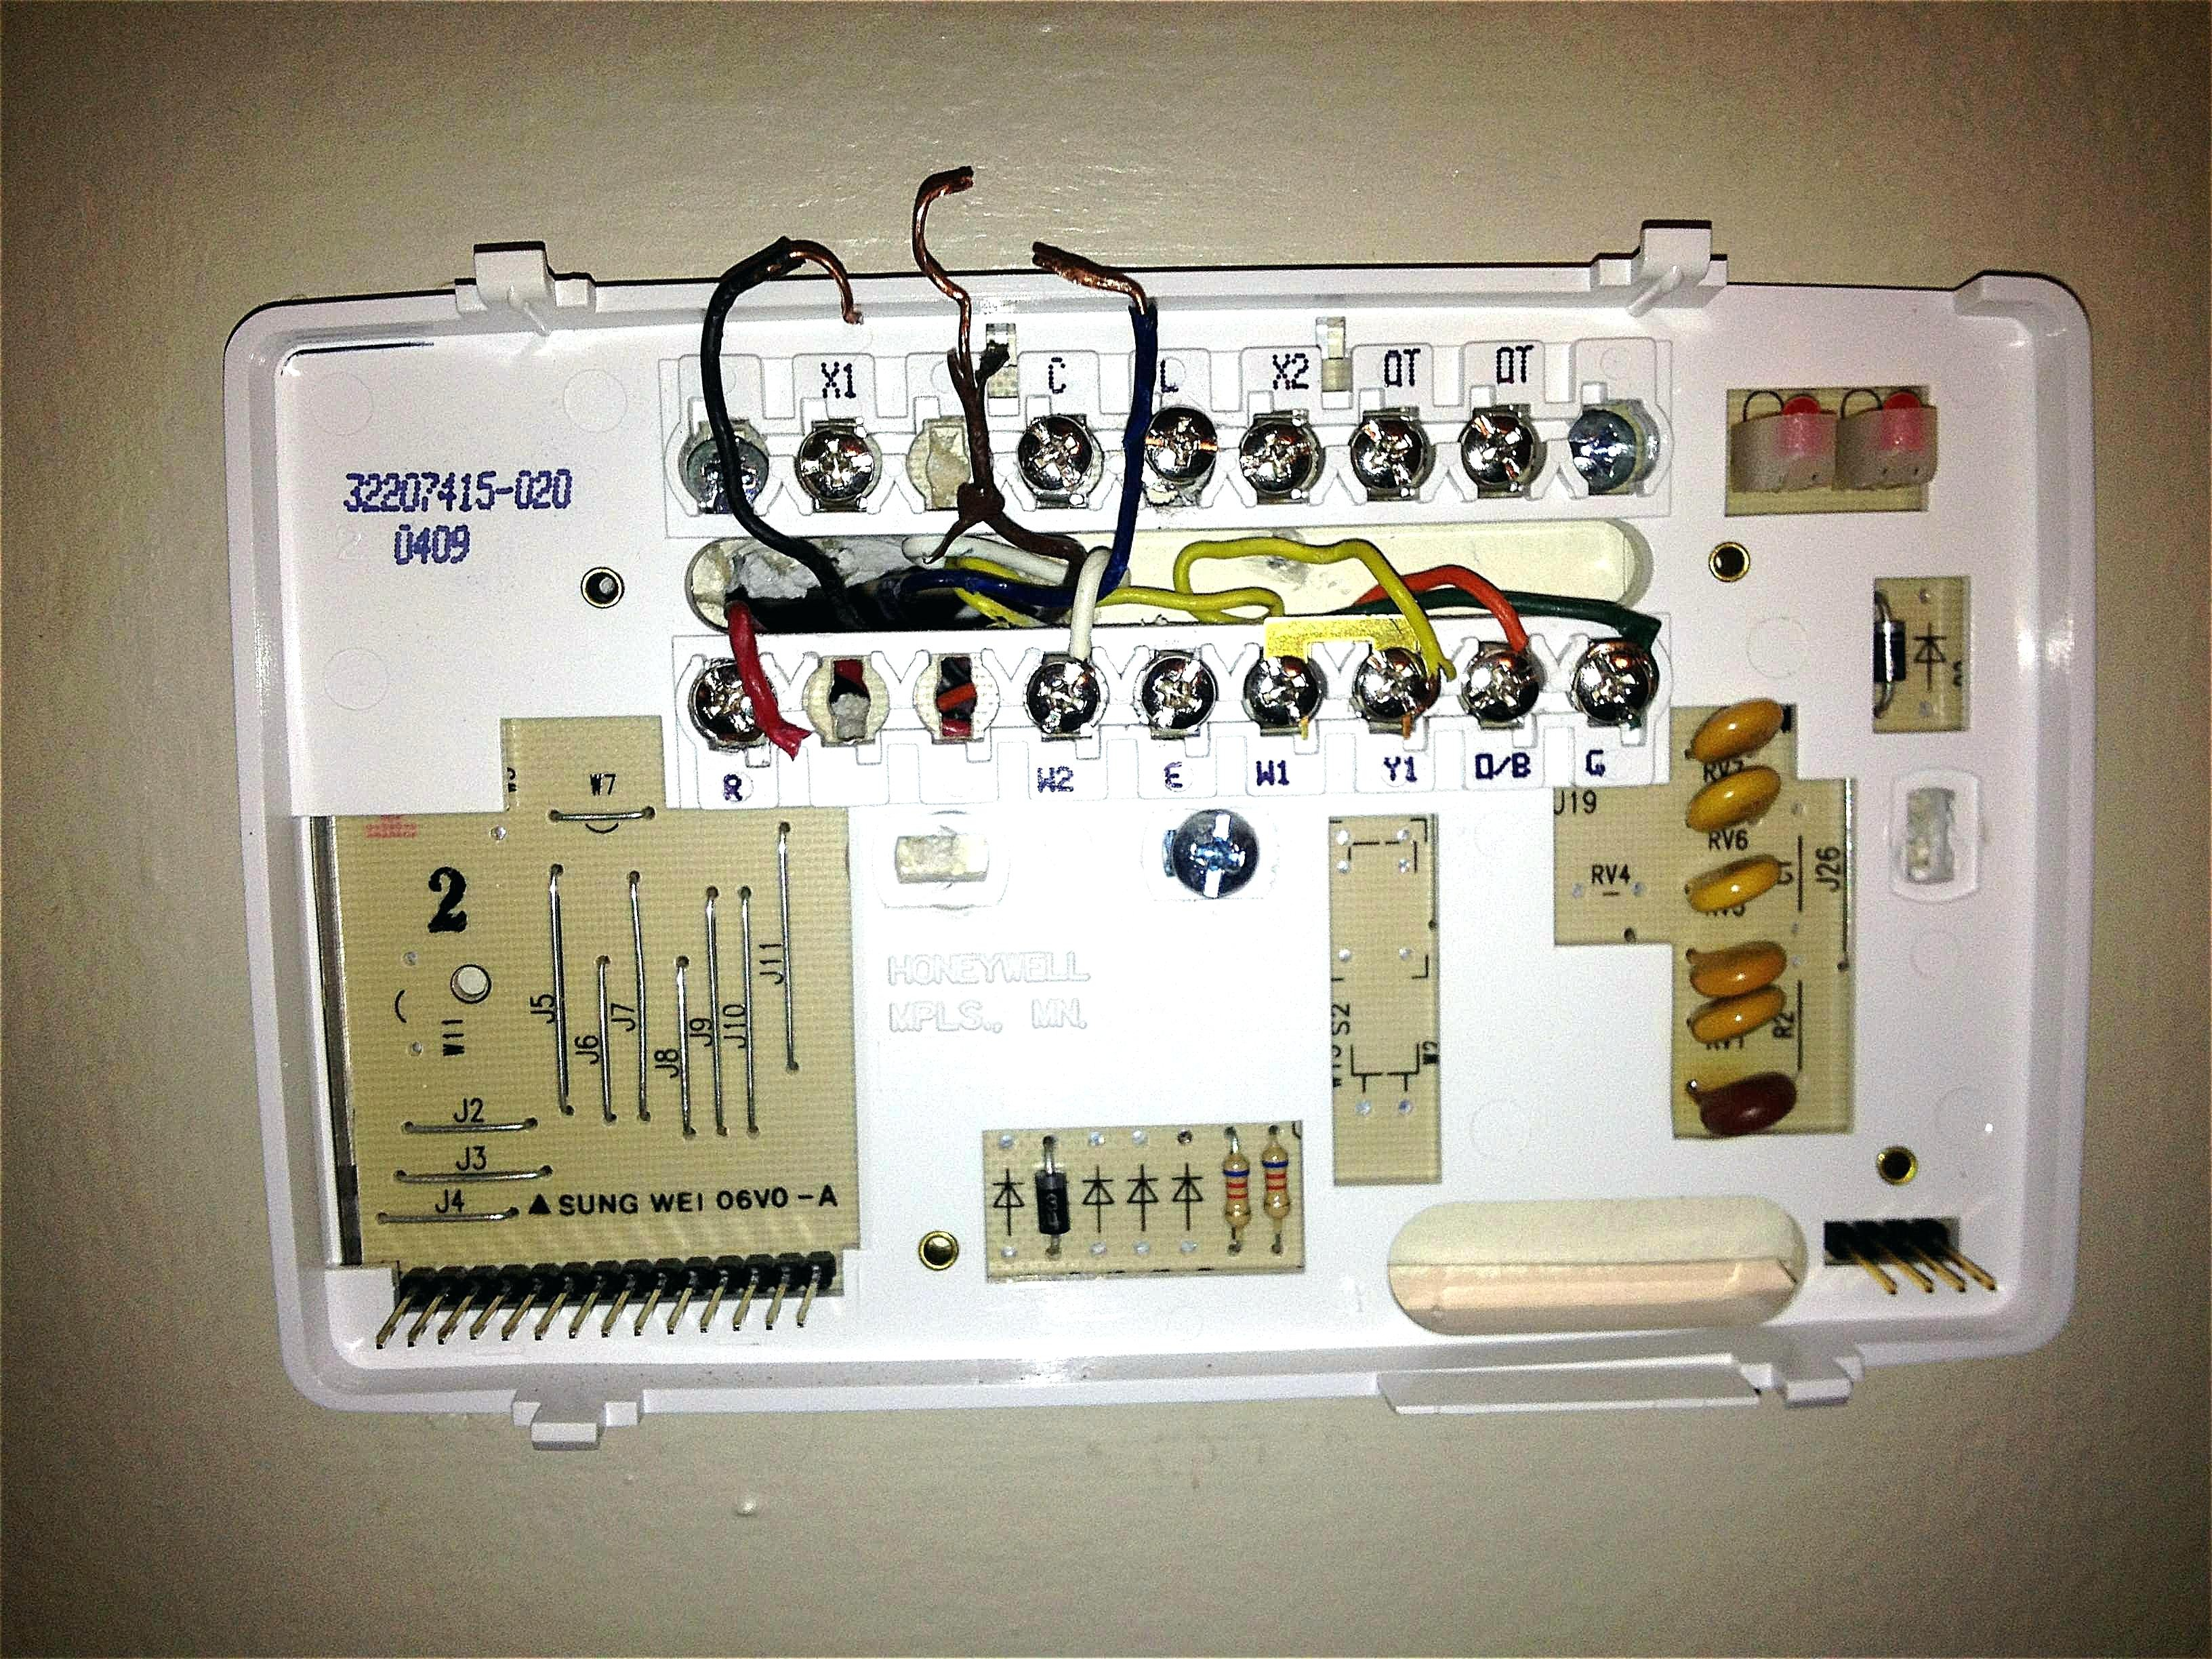 Honeywell Smart Thermostat Wiring Diagram